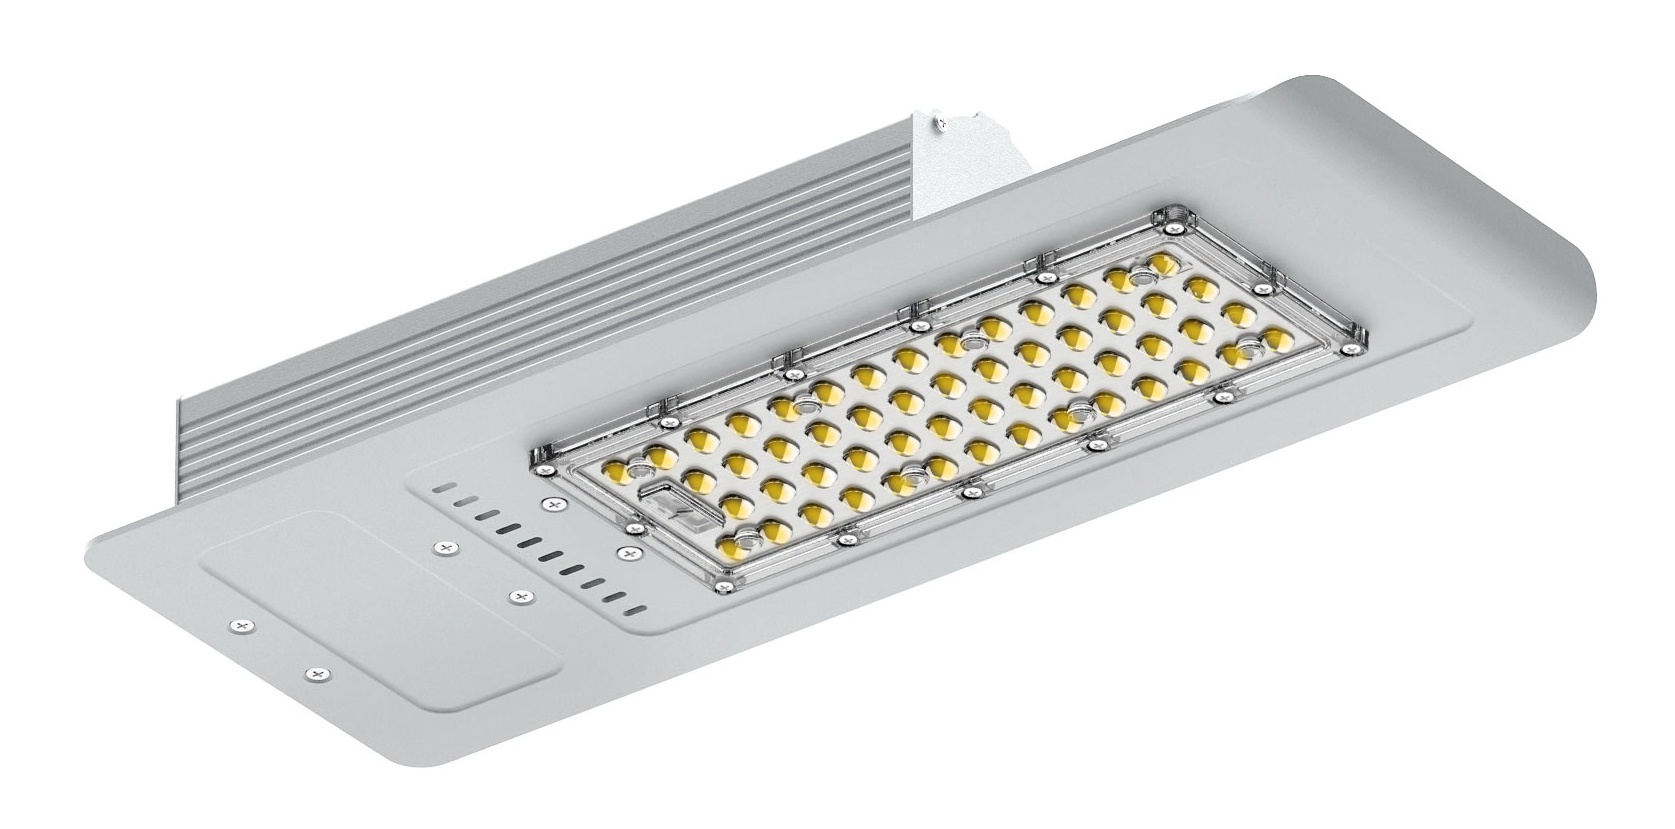 Lamparas De Led Industriales Lampara Led Tipo Street Light Lamparas Led Suminae Led